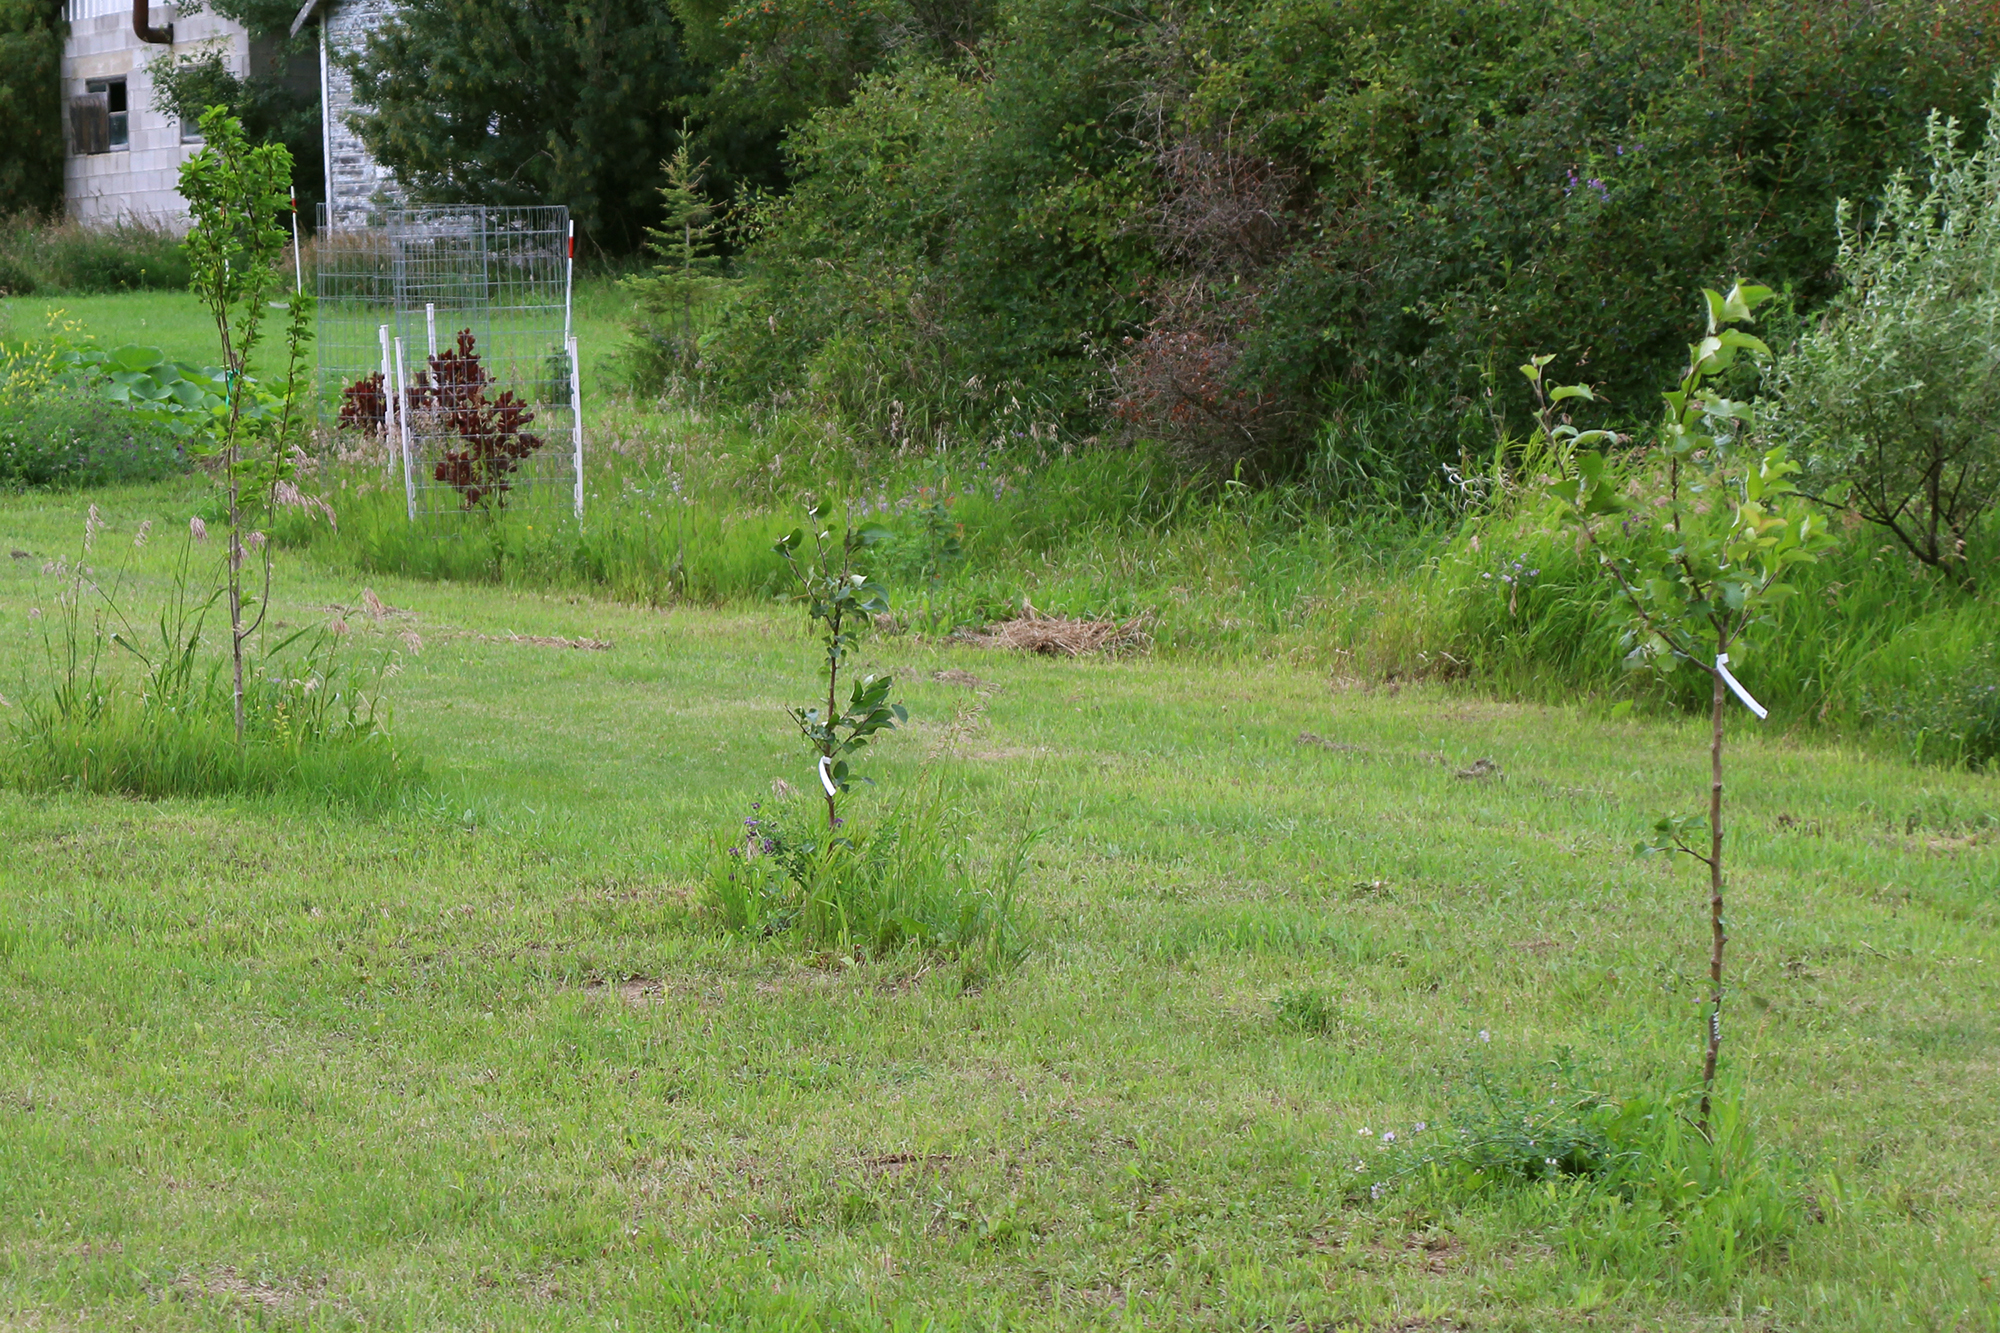 a row of young fruit trees in a grassy area